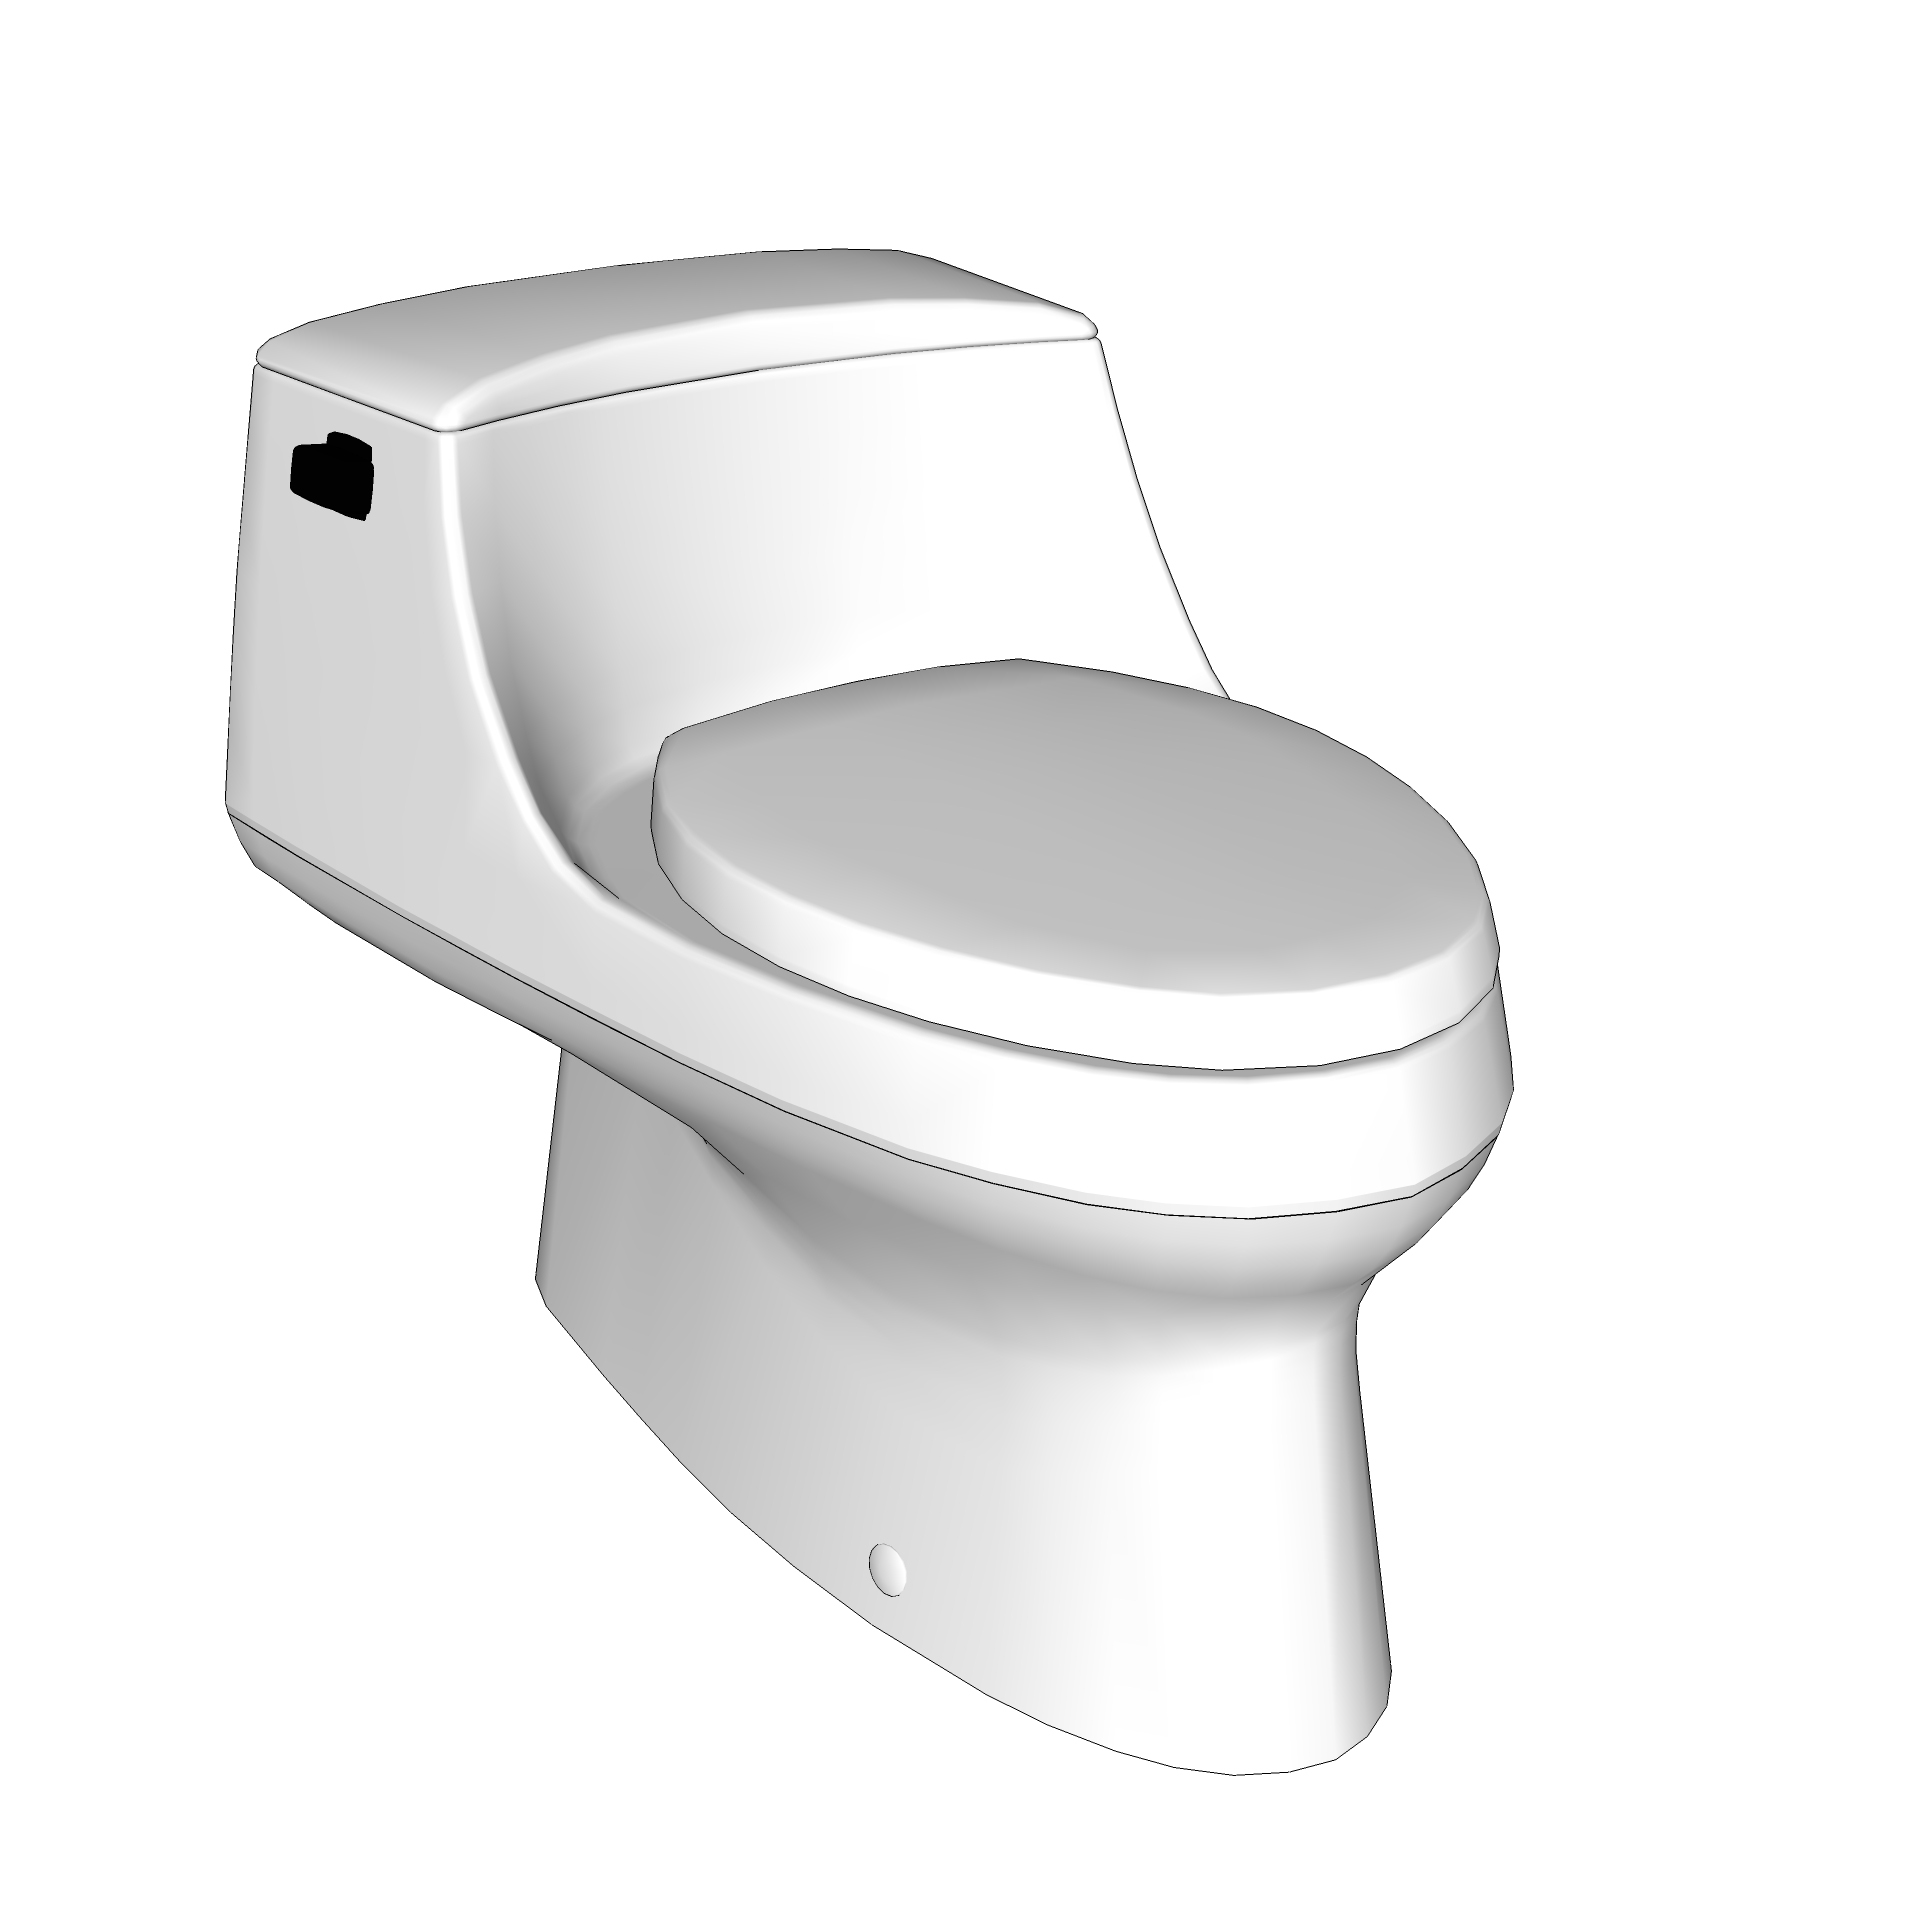 Toilet AI 01 Screenshot.jpg